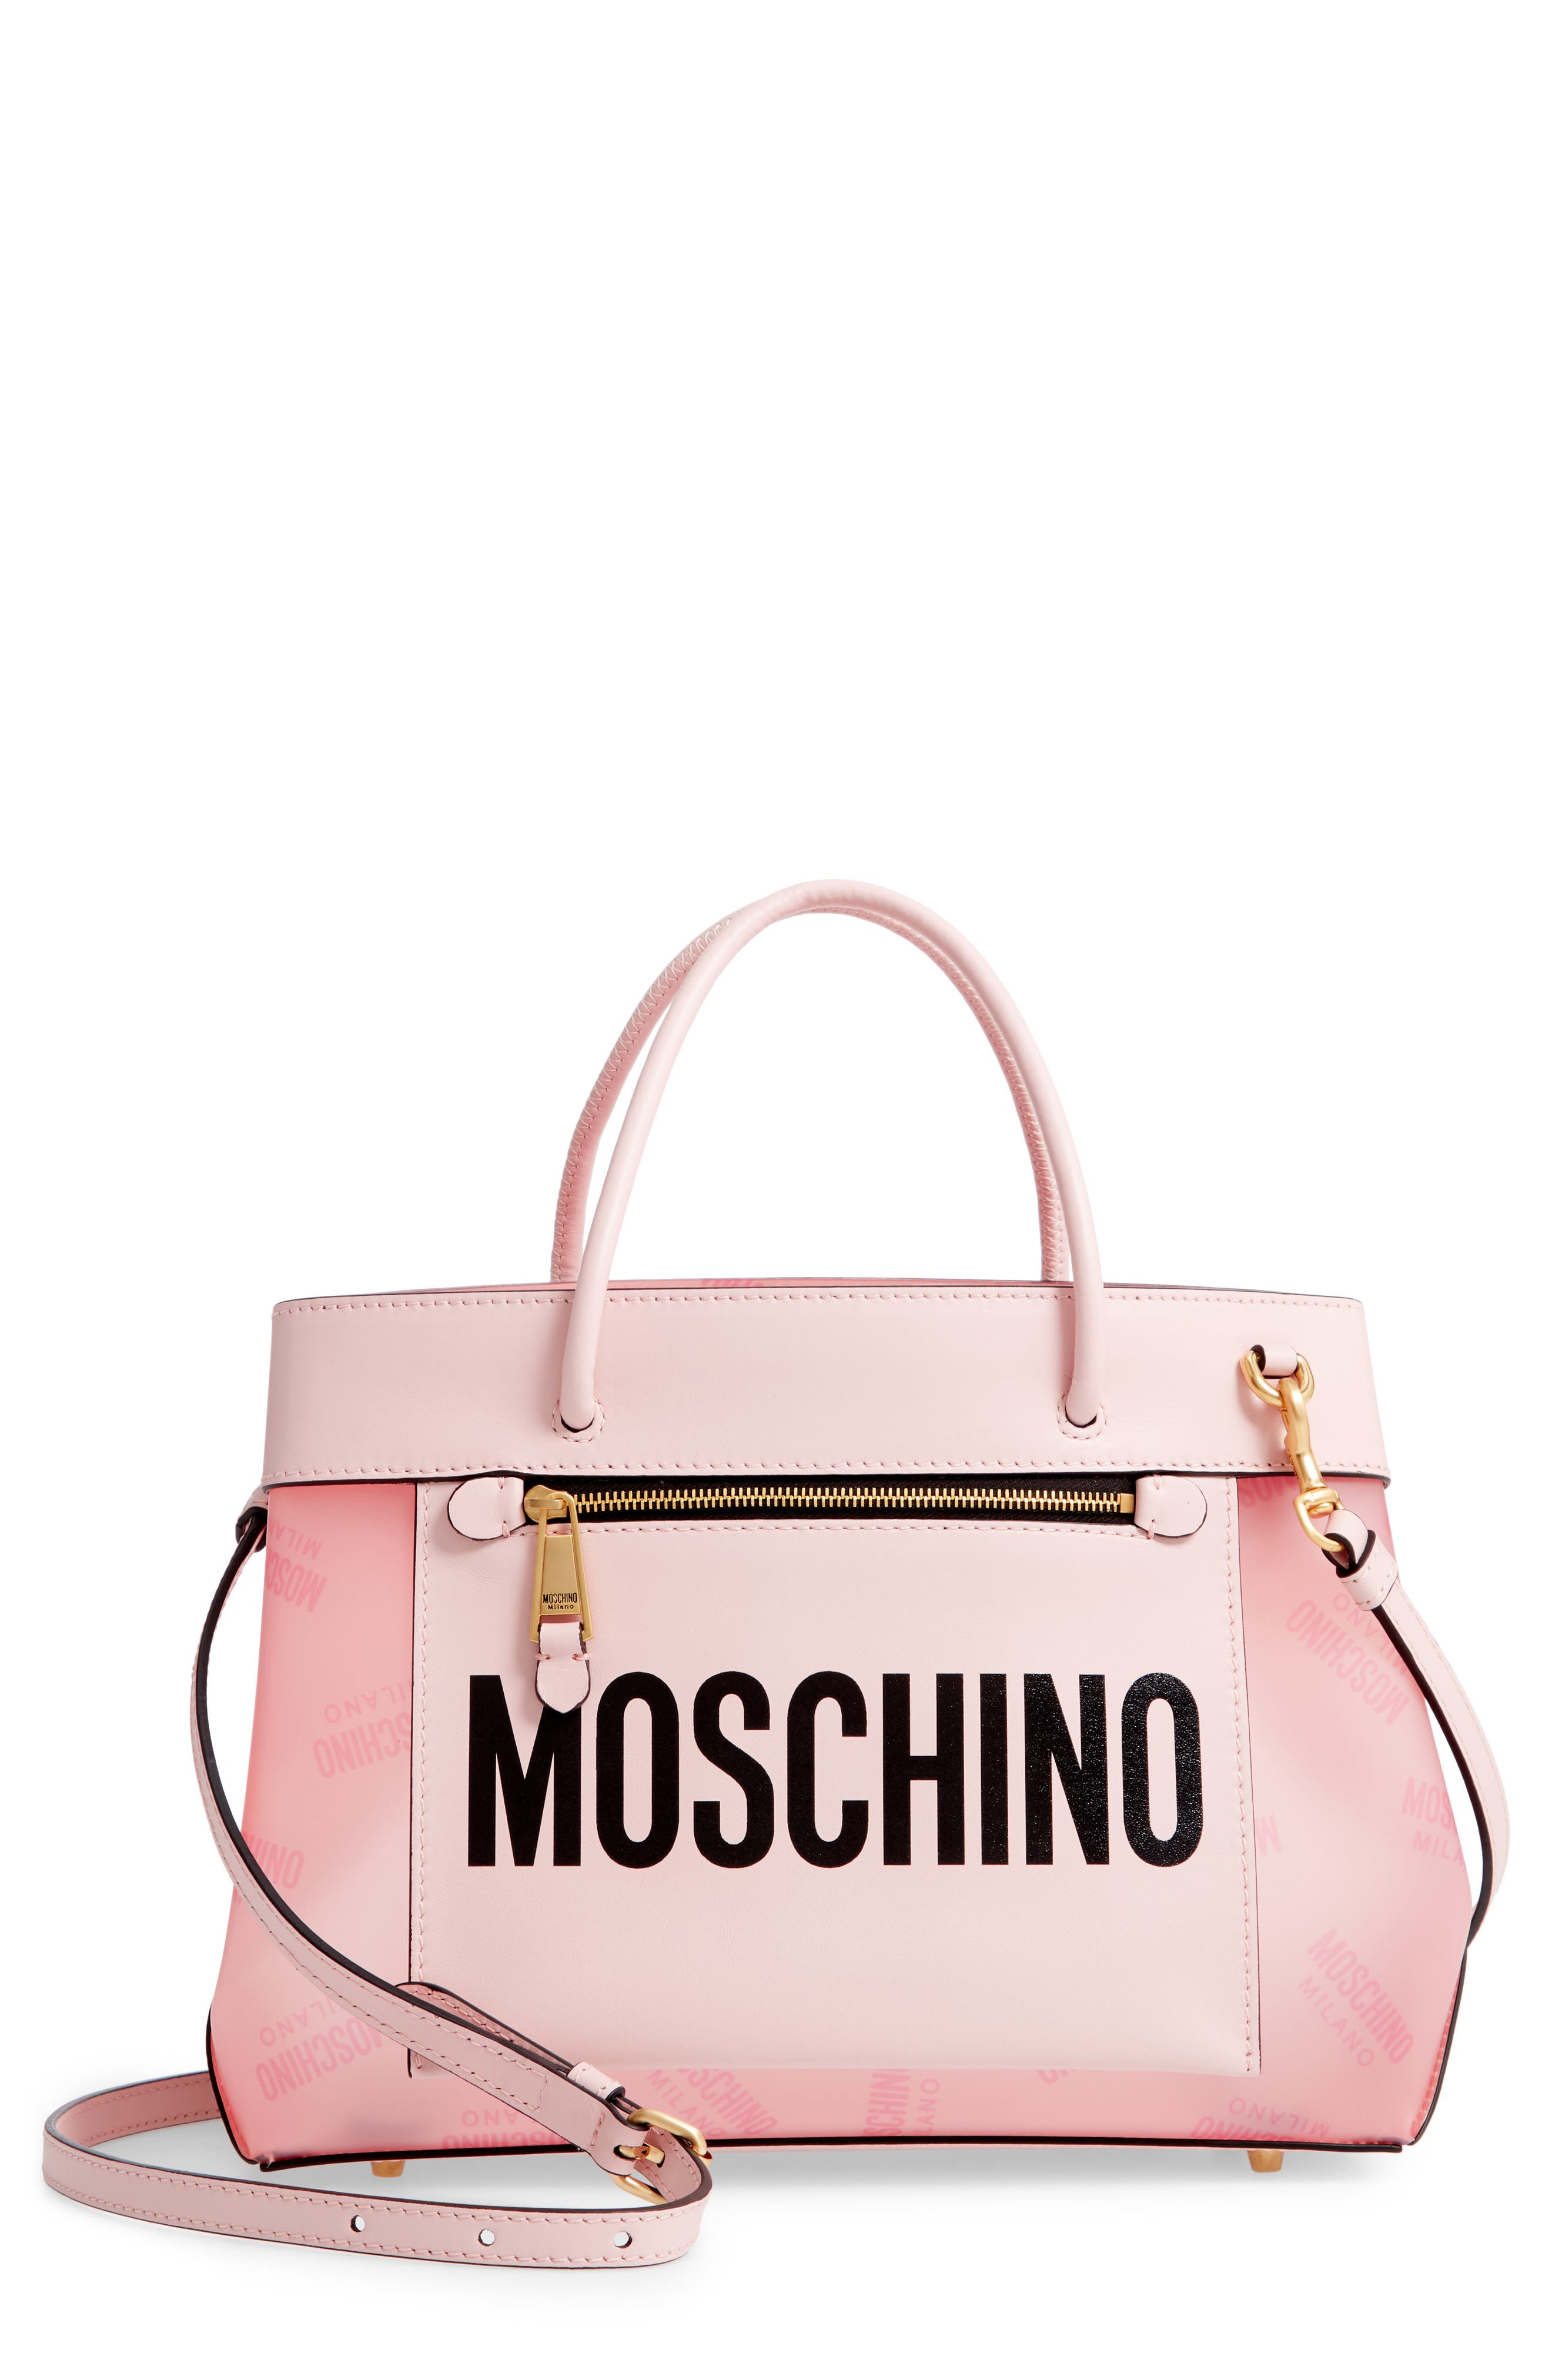 MOSCHINO Translucent Logo Tote, Main, color, PINK